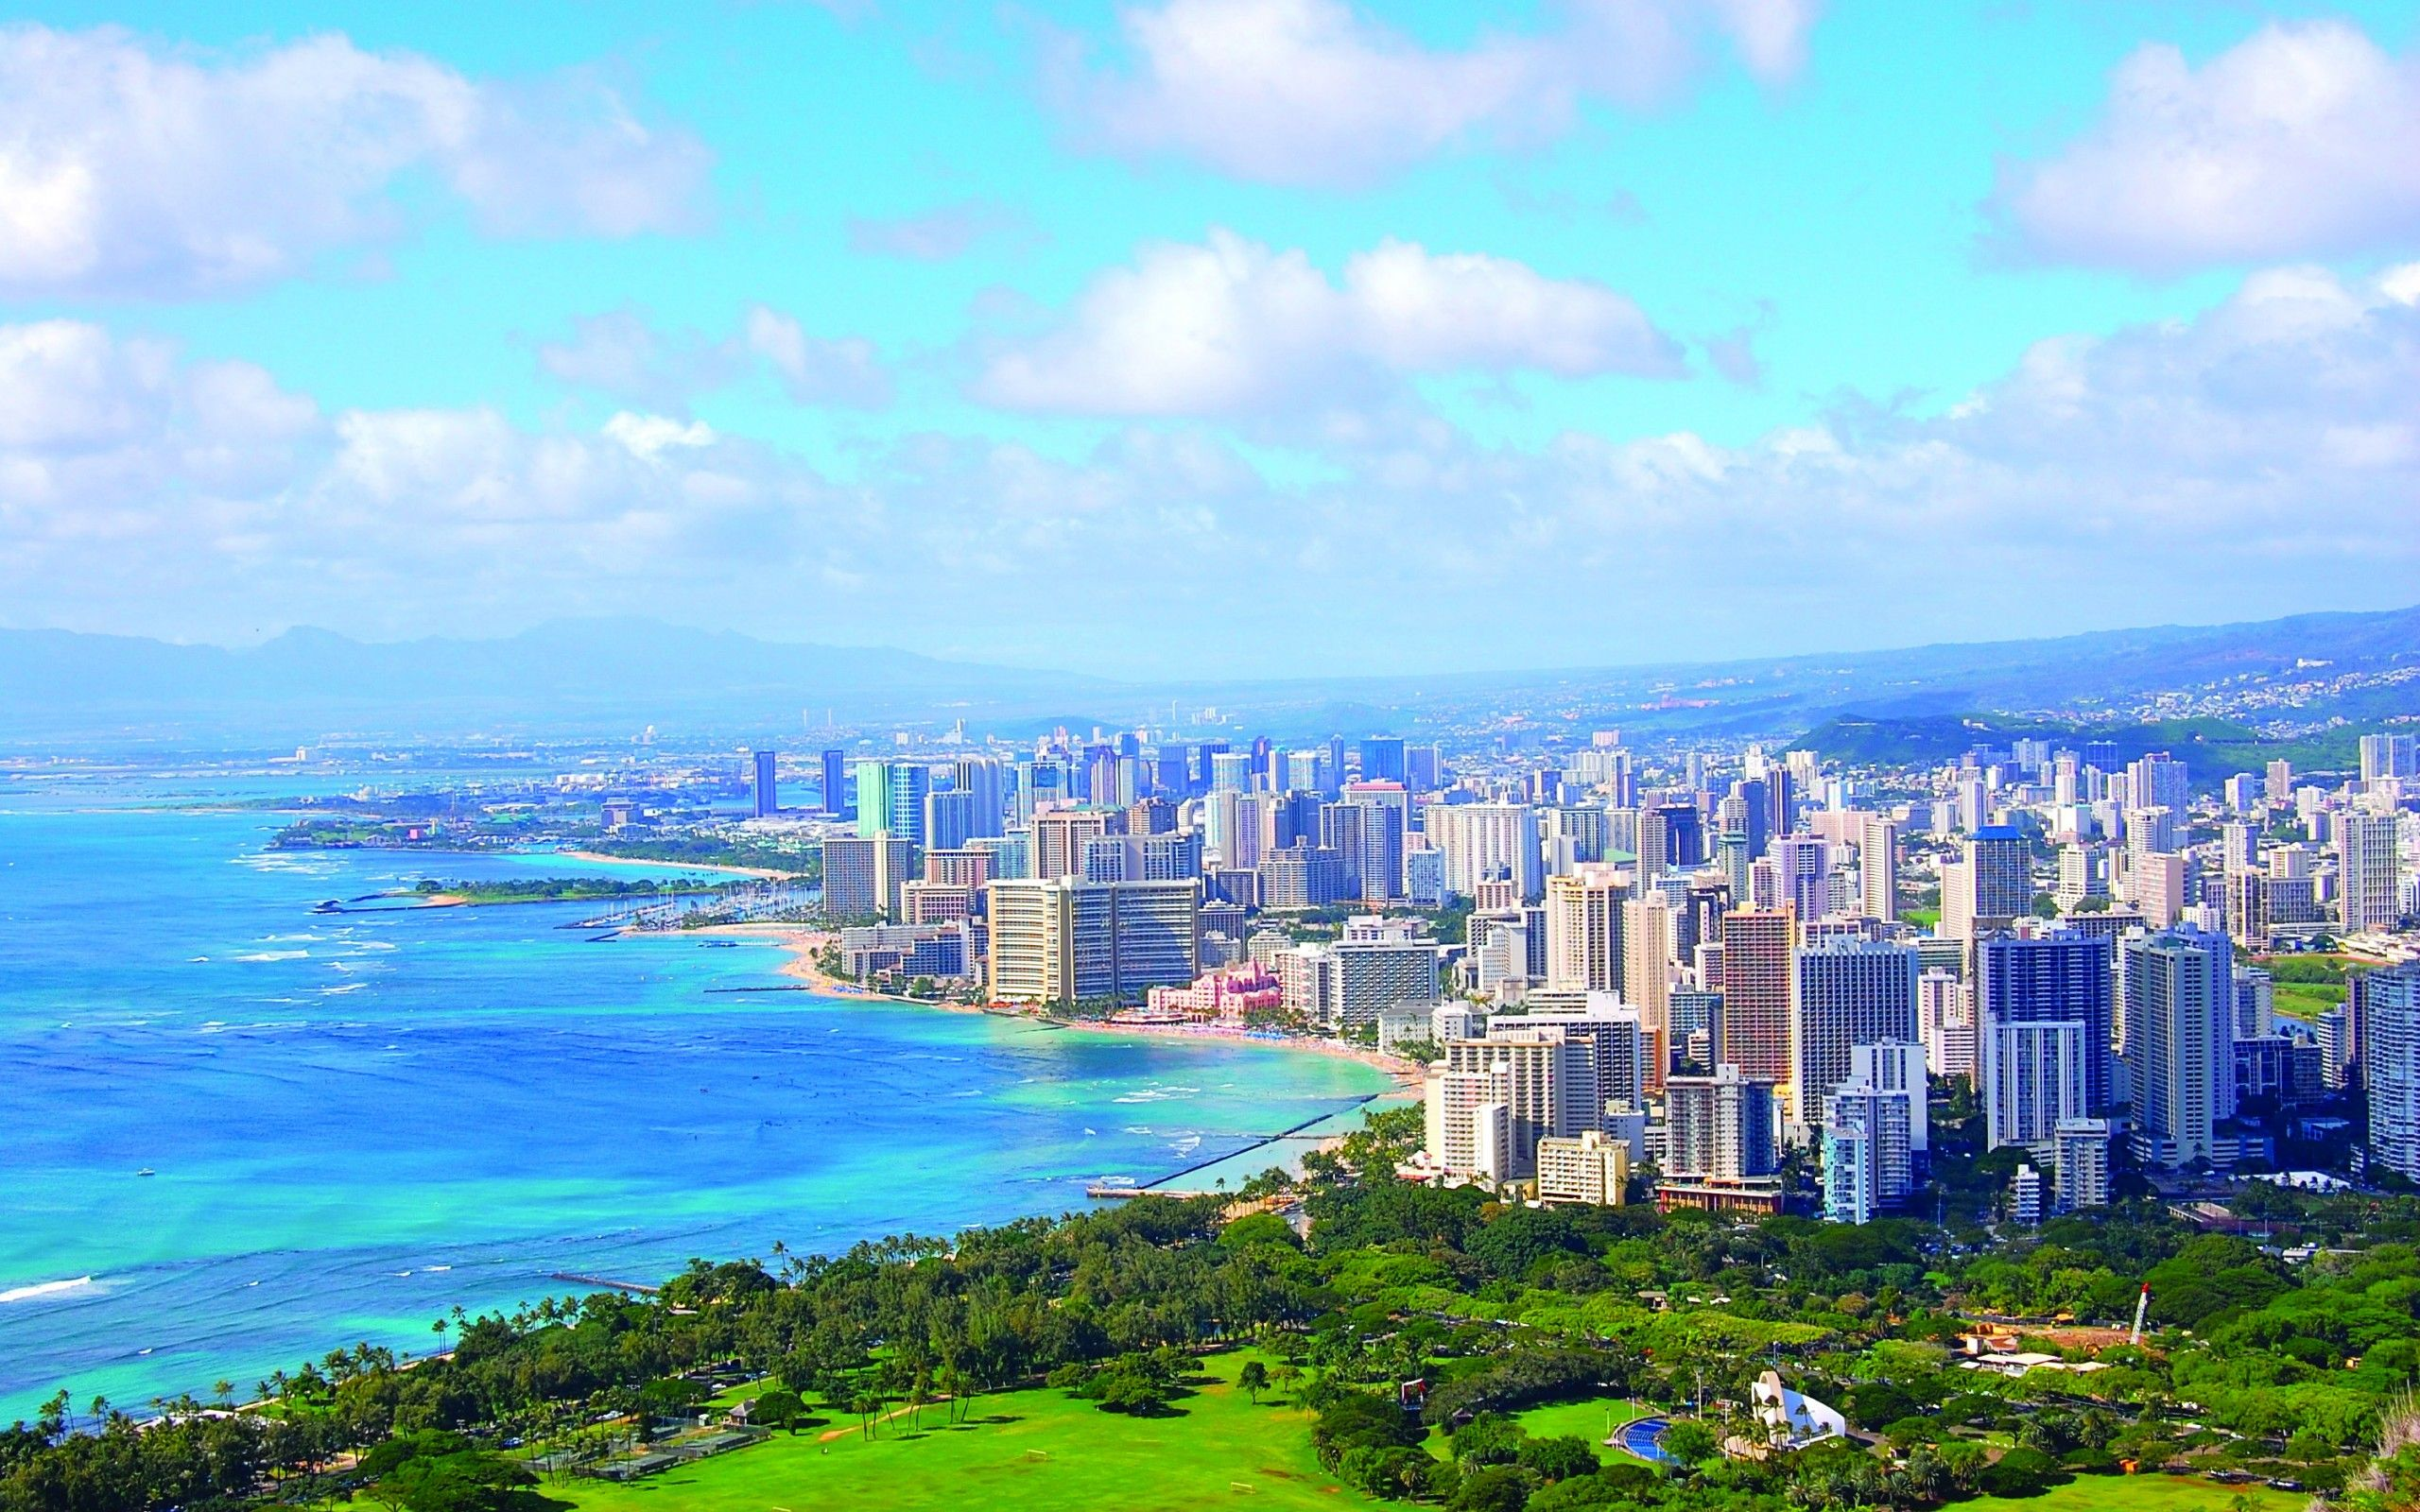 Honolulu Hawaii Wallpapers Top Free Honolulu Hawaii Backgrounds Wallpaperaccess